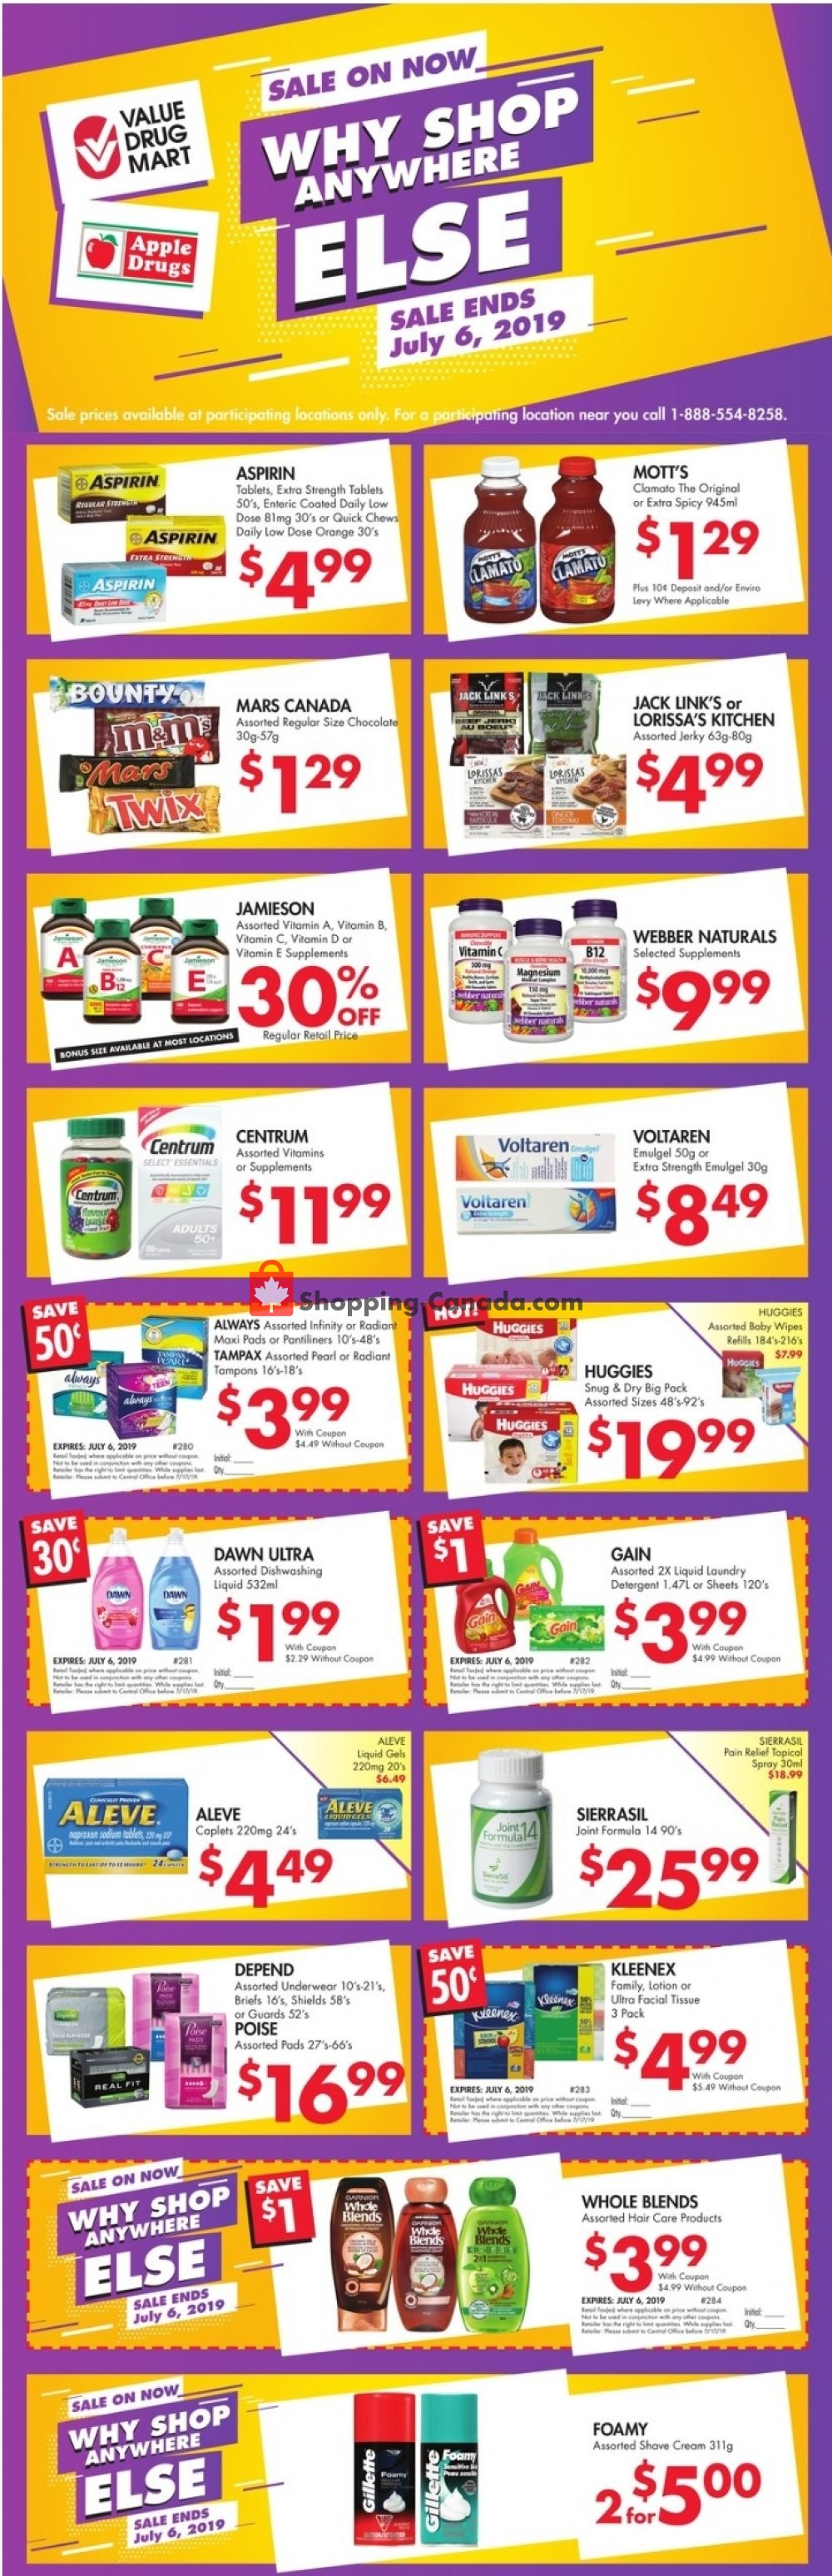 Flyer Value Drug Mart Canada - from Sunday June 30, 2019 to Saturday July 6, 2019